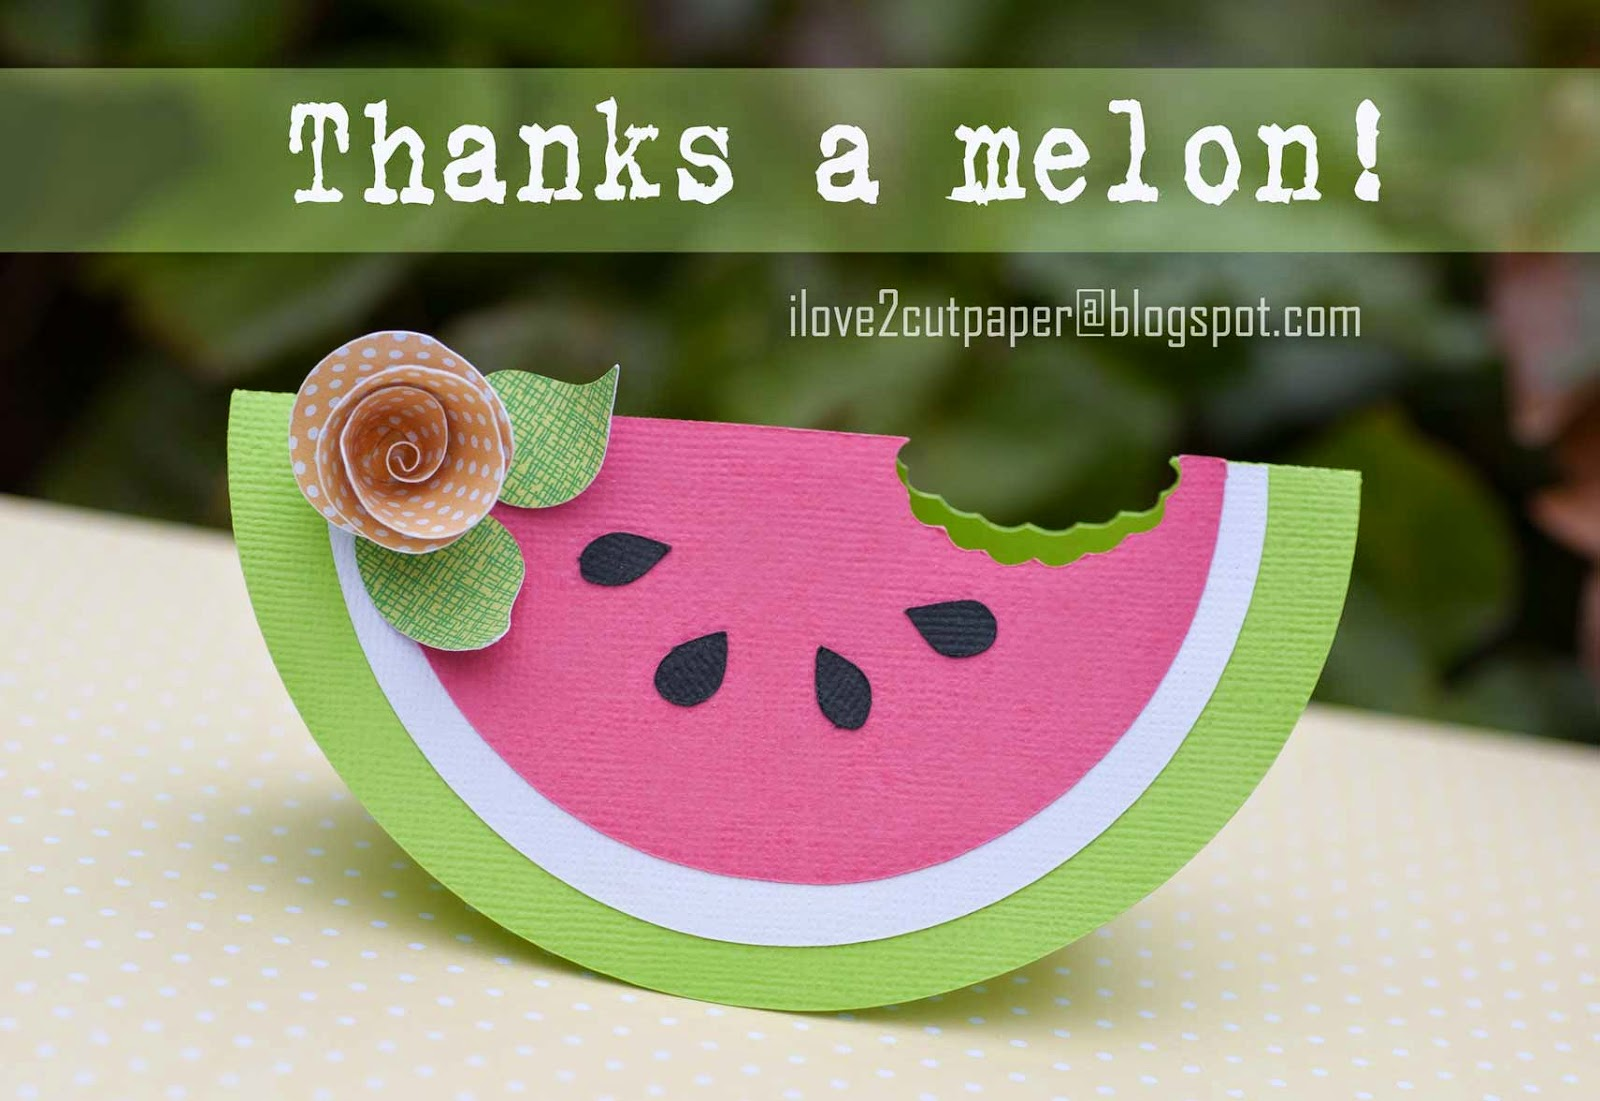 Melon shaped cutting file